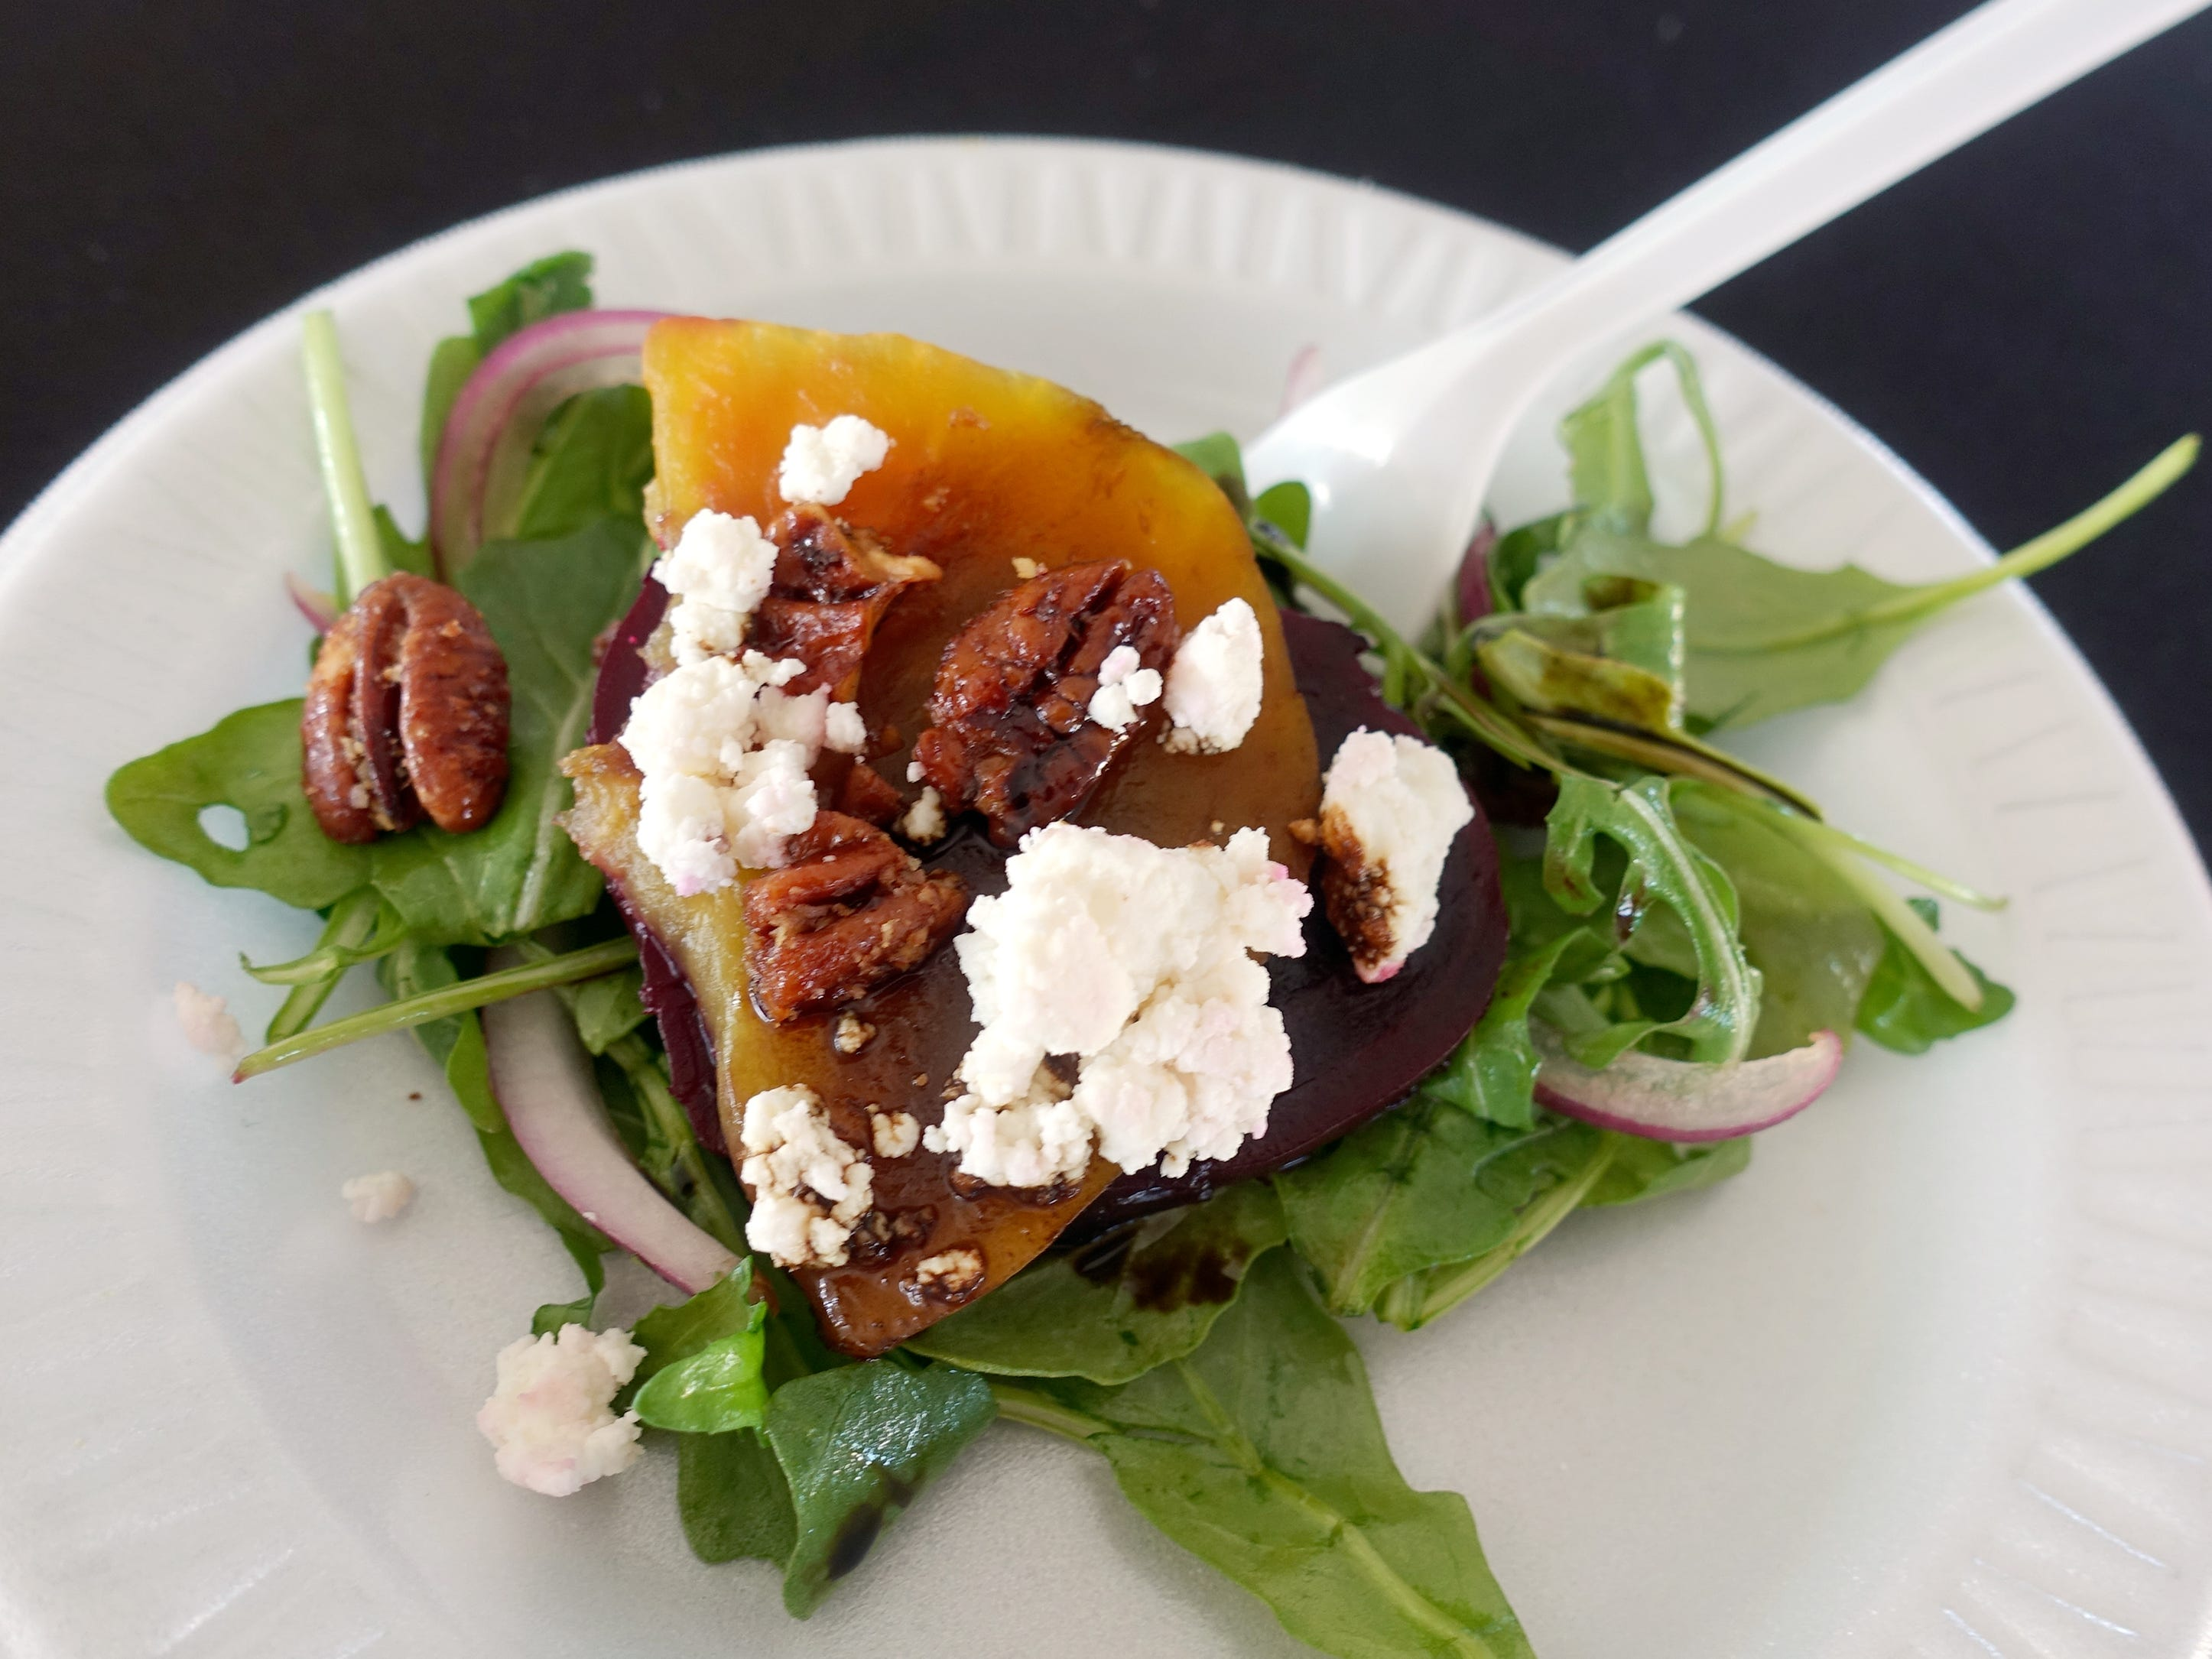 Organic beet salad with arugula, red onion, goat cheese, candied pecans and balsamic reduction from Timo Wine Bar at azcentral Wine & Food Experience 2018 at WestWorld of Scottsdale, Saturday, Nov. 3, 2018.